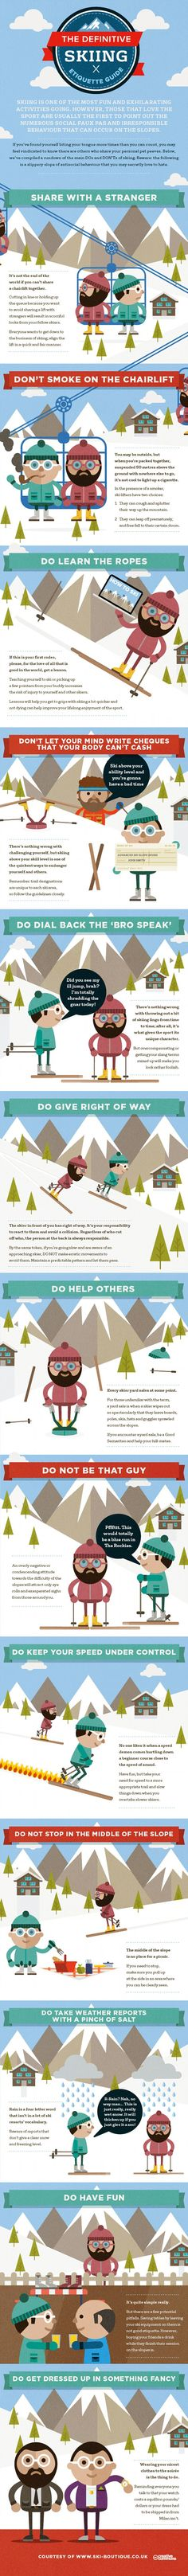 Ski Boutique infographic reveals the ultimate guide to skiing etiquette | Daily Mail Online